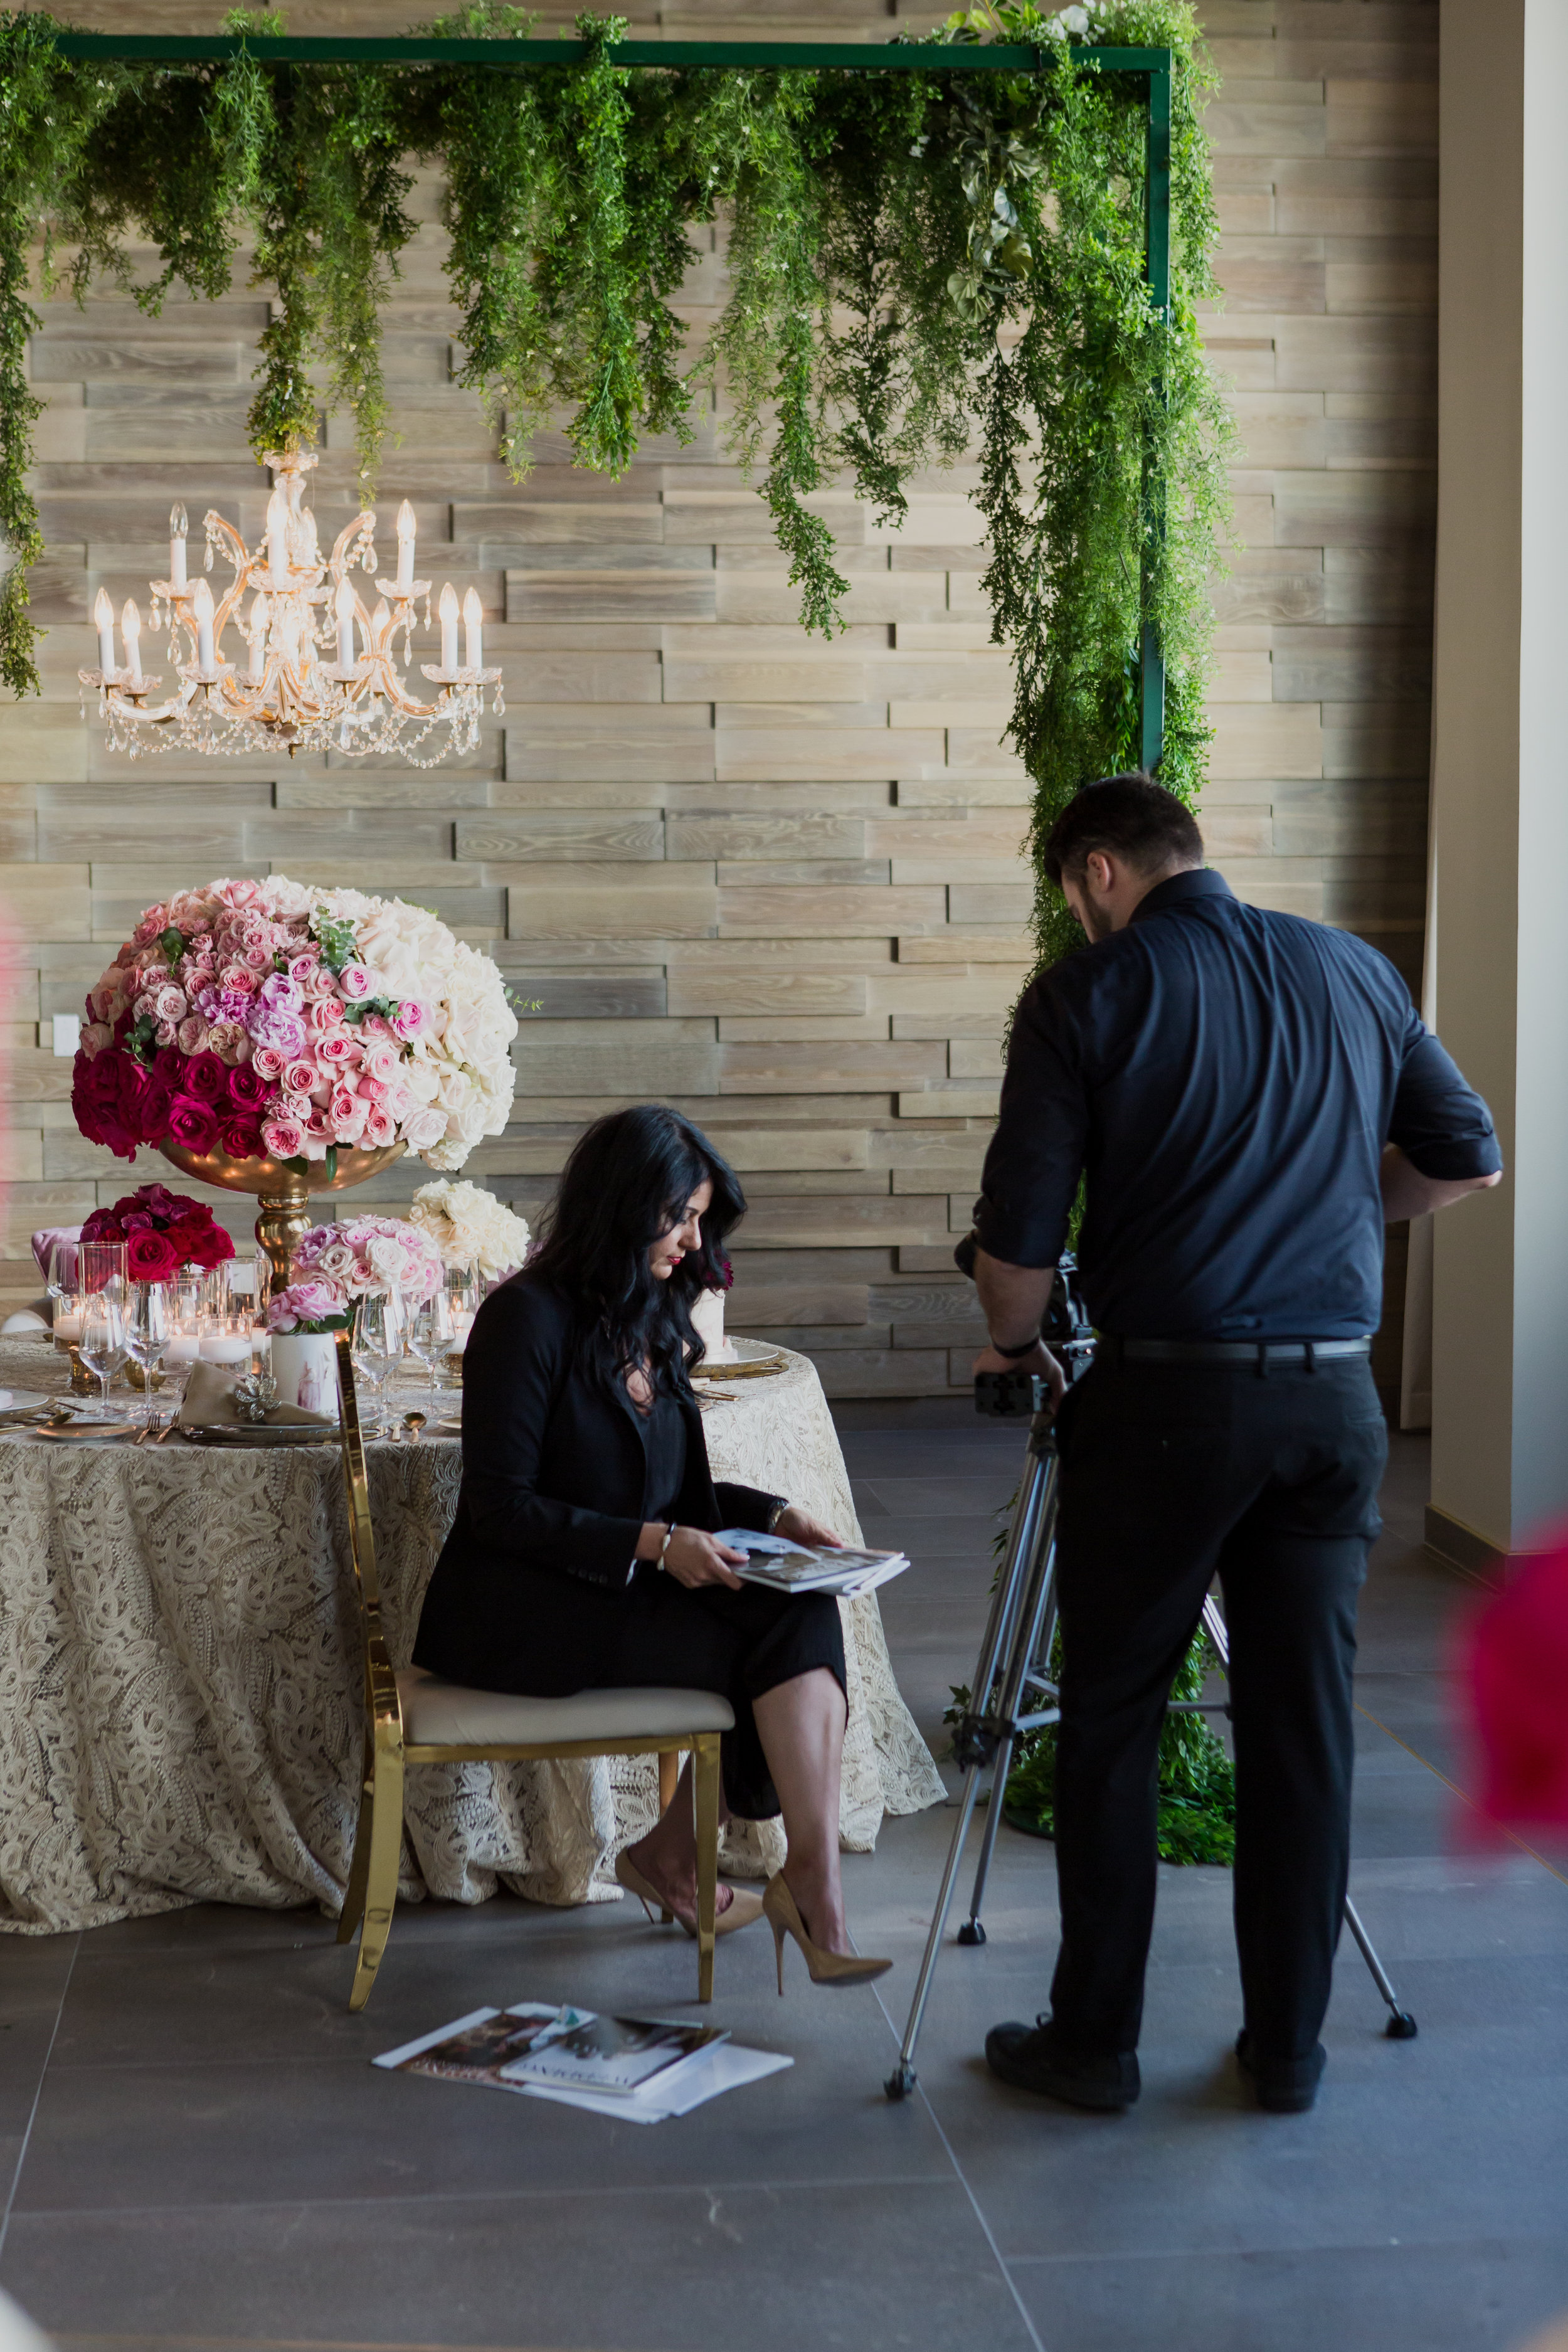 Behind the scenes filming our commercial for The Wedding Editorialist. Photo by Adam Frazier.